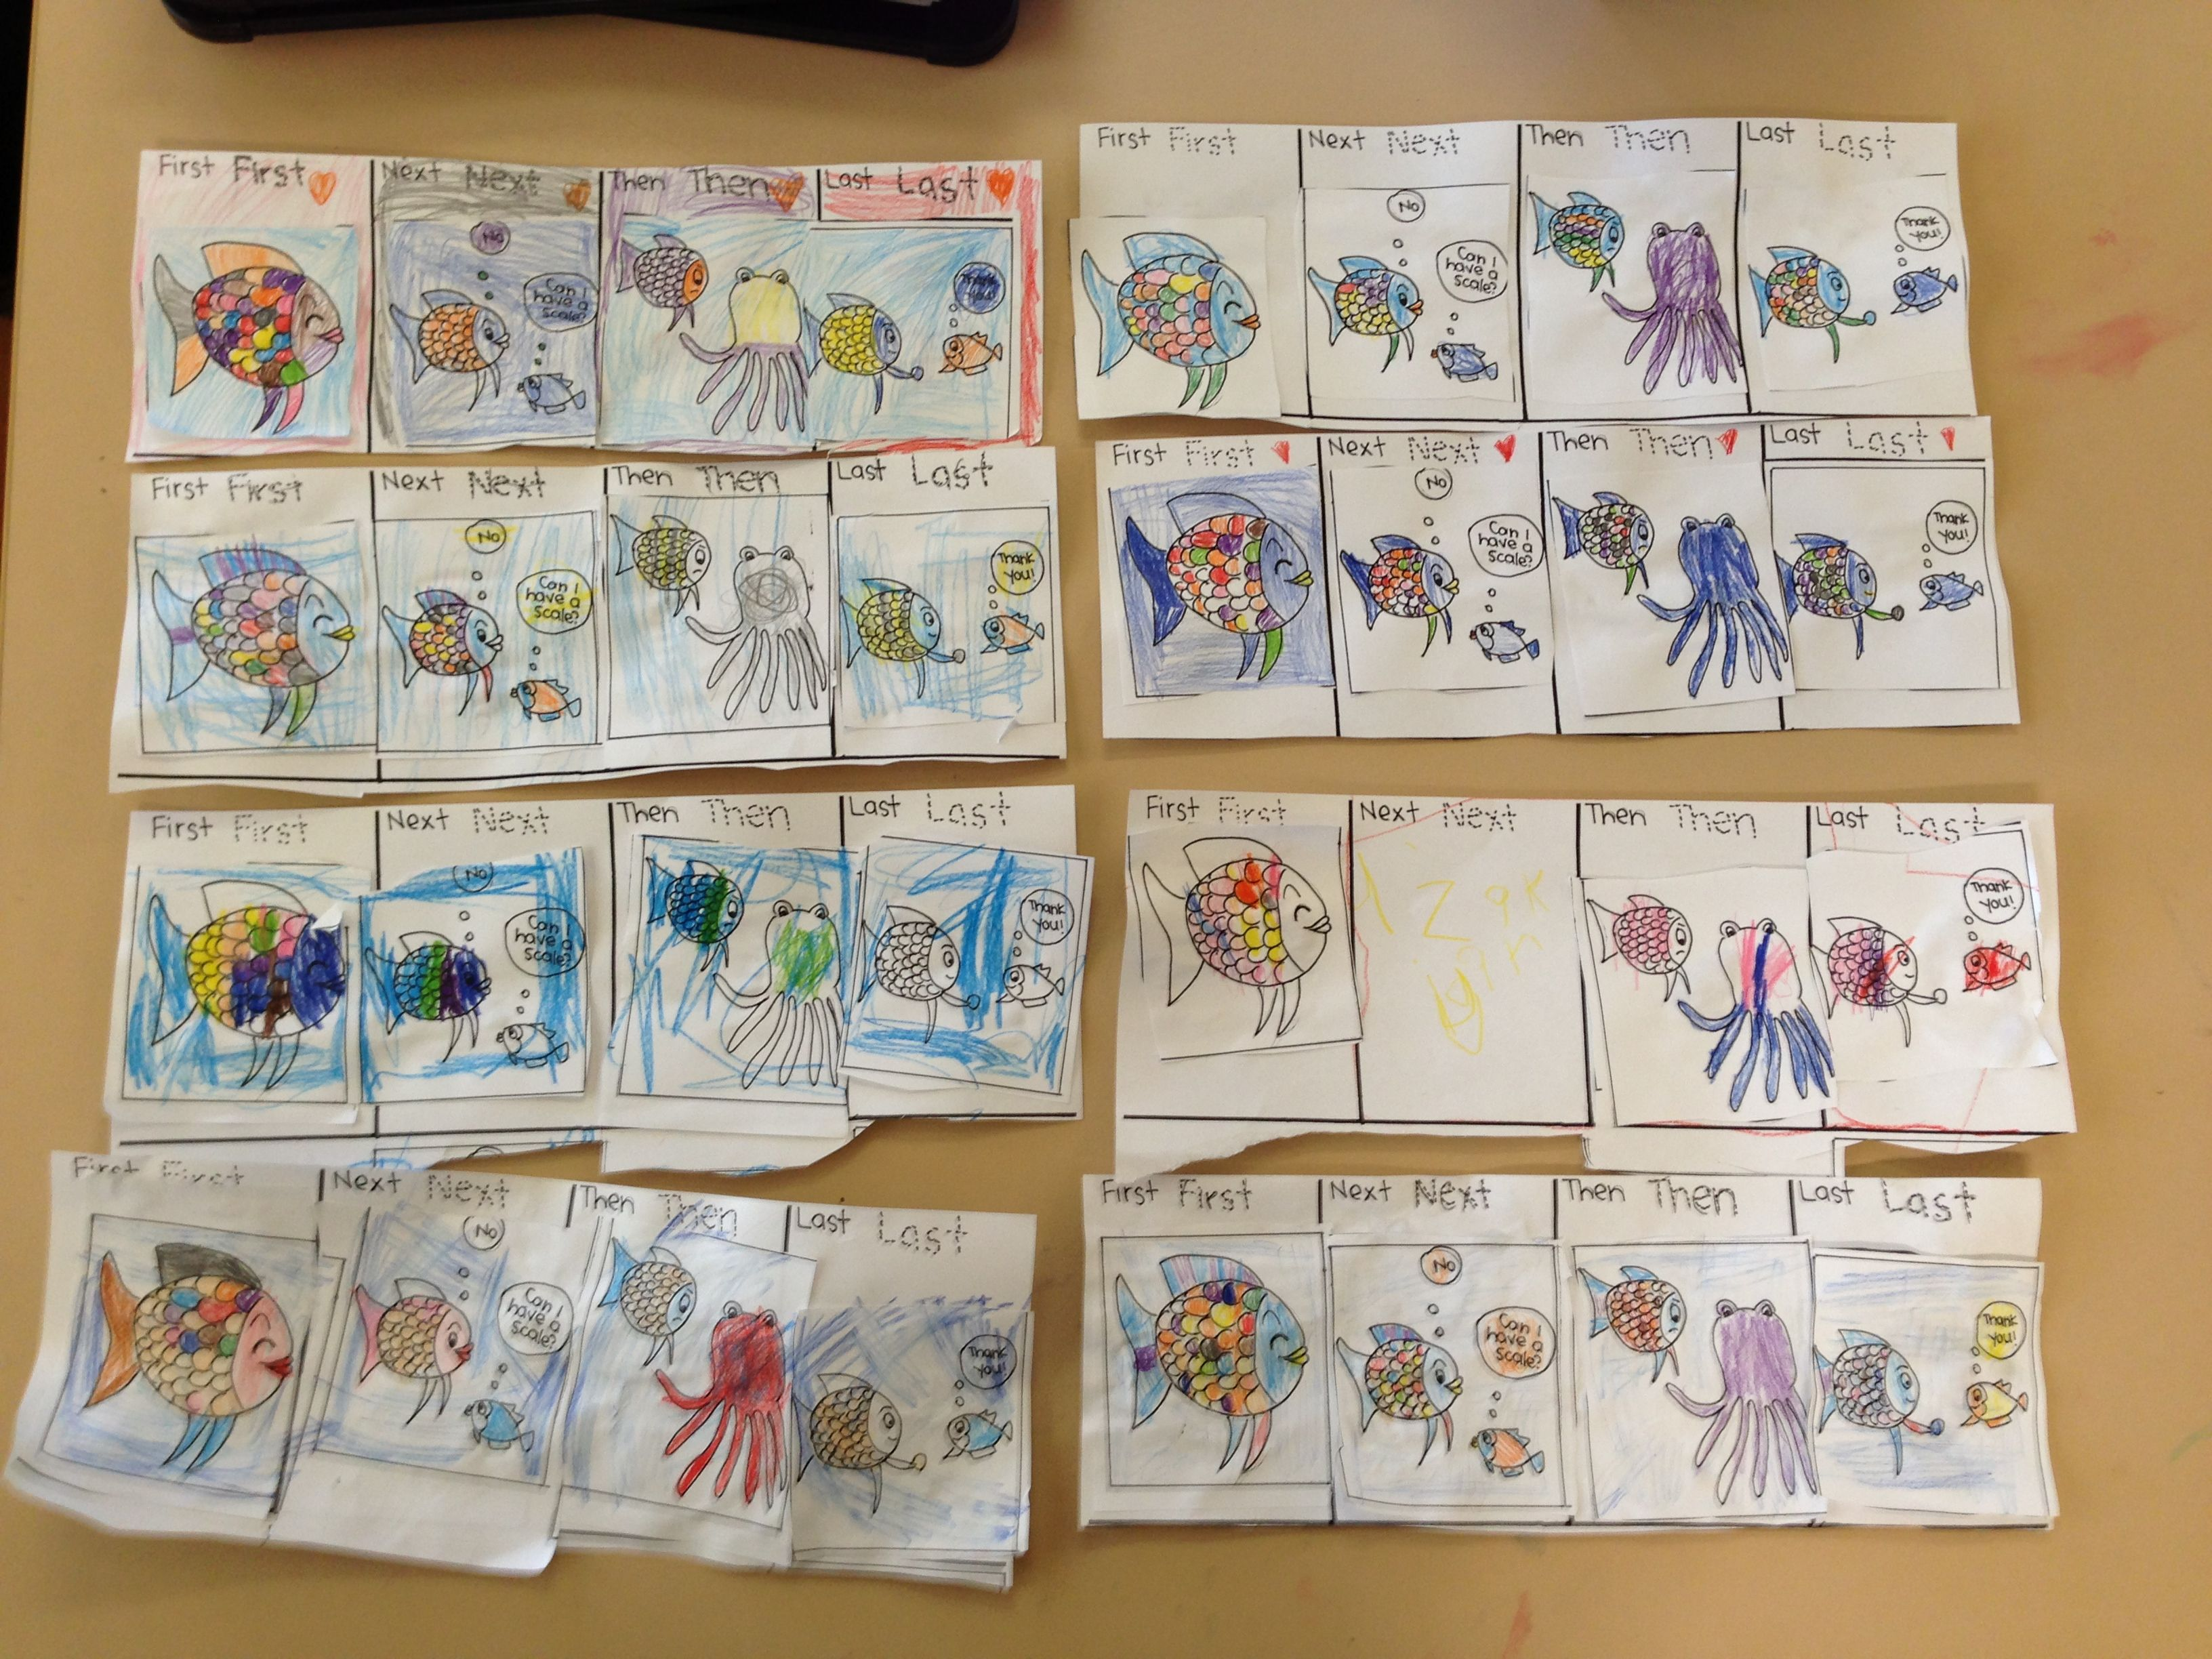 Maths Hsie The Rainbow Fish Sequencing And Good Quality Friendships The Kids Loved It